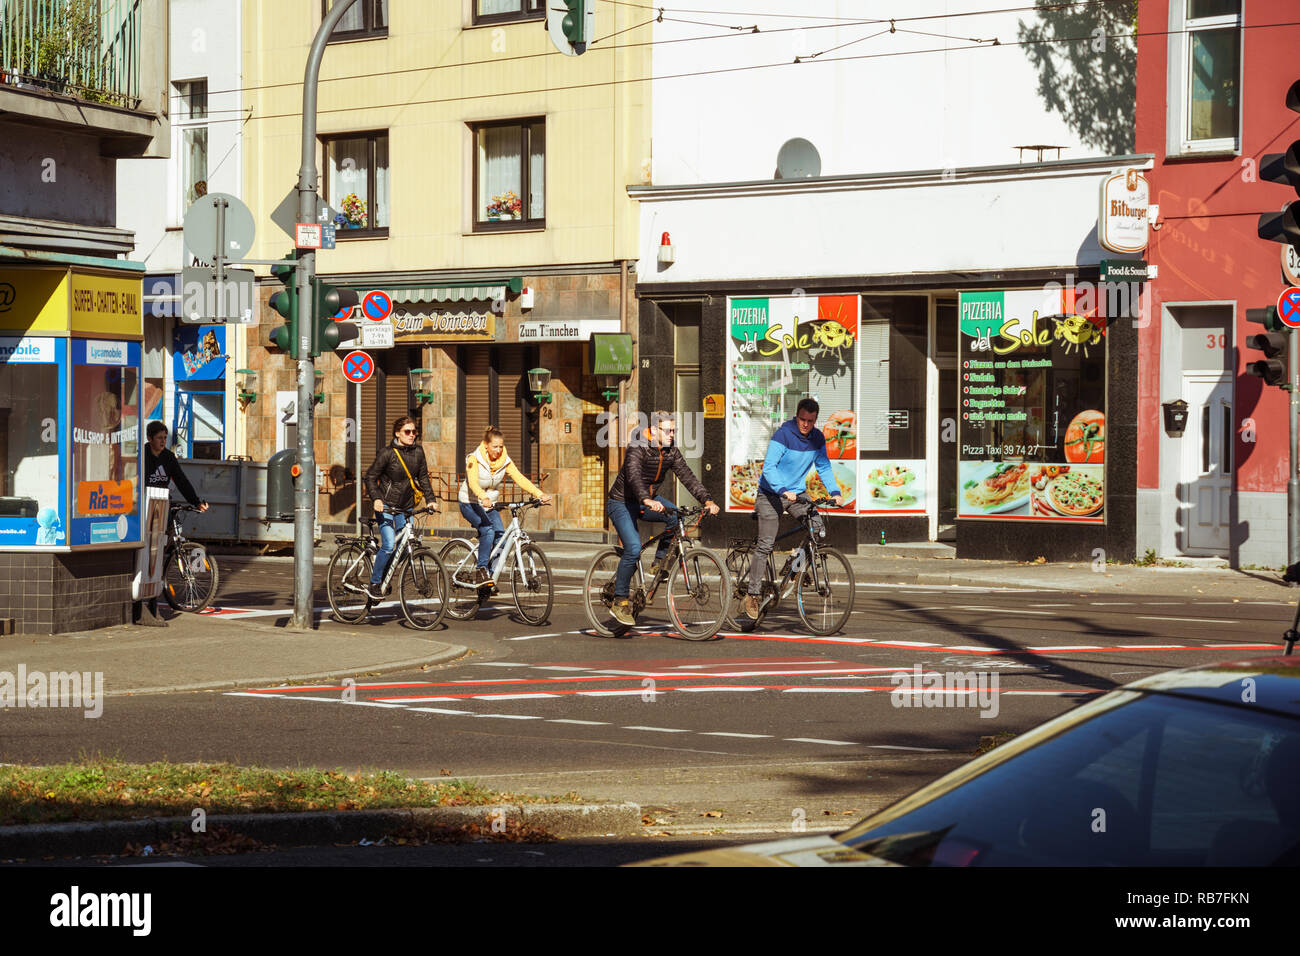 October 20, 2018 Germany Krefeld city. Bicycle as an ecological transport, means movement in Europe. A city dweller rides a bike - Stock Image